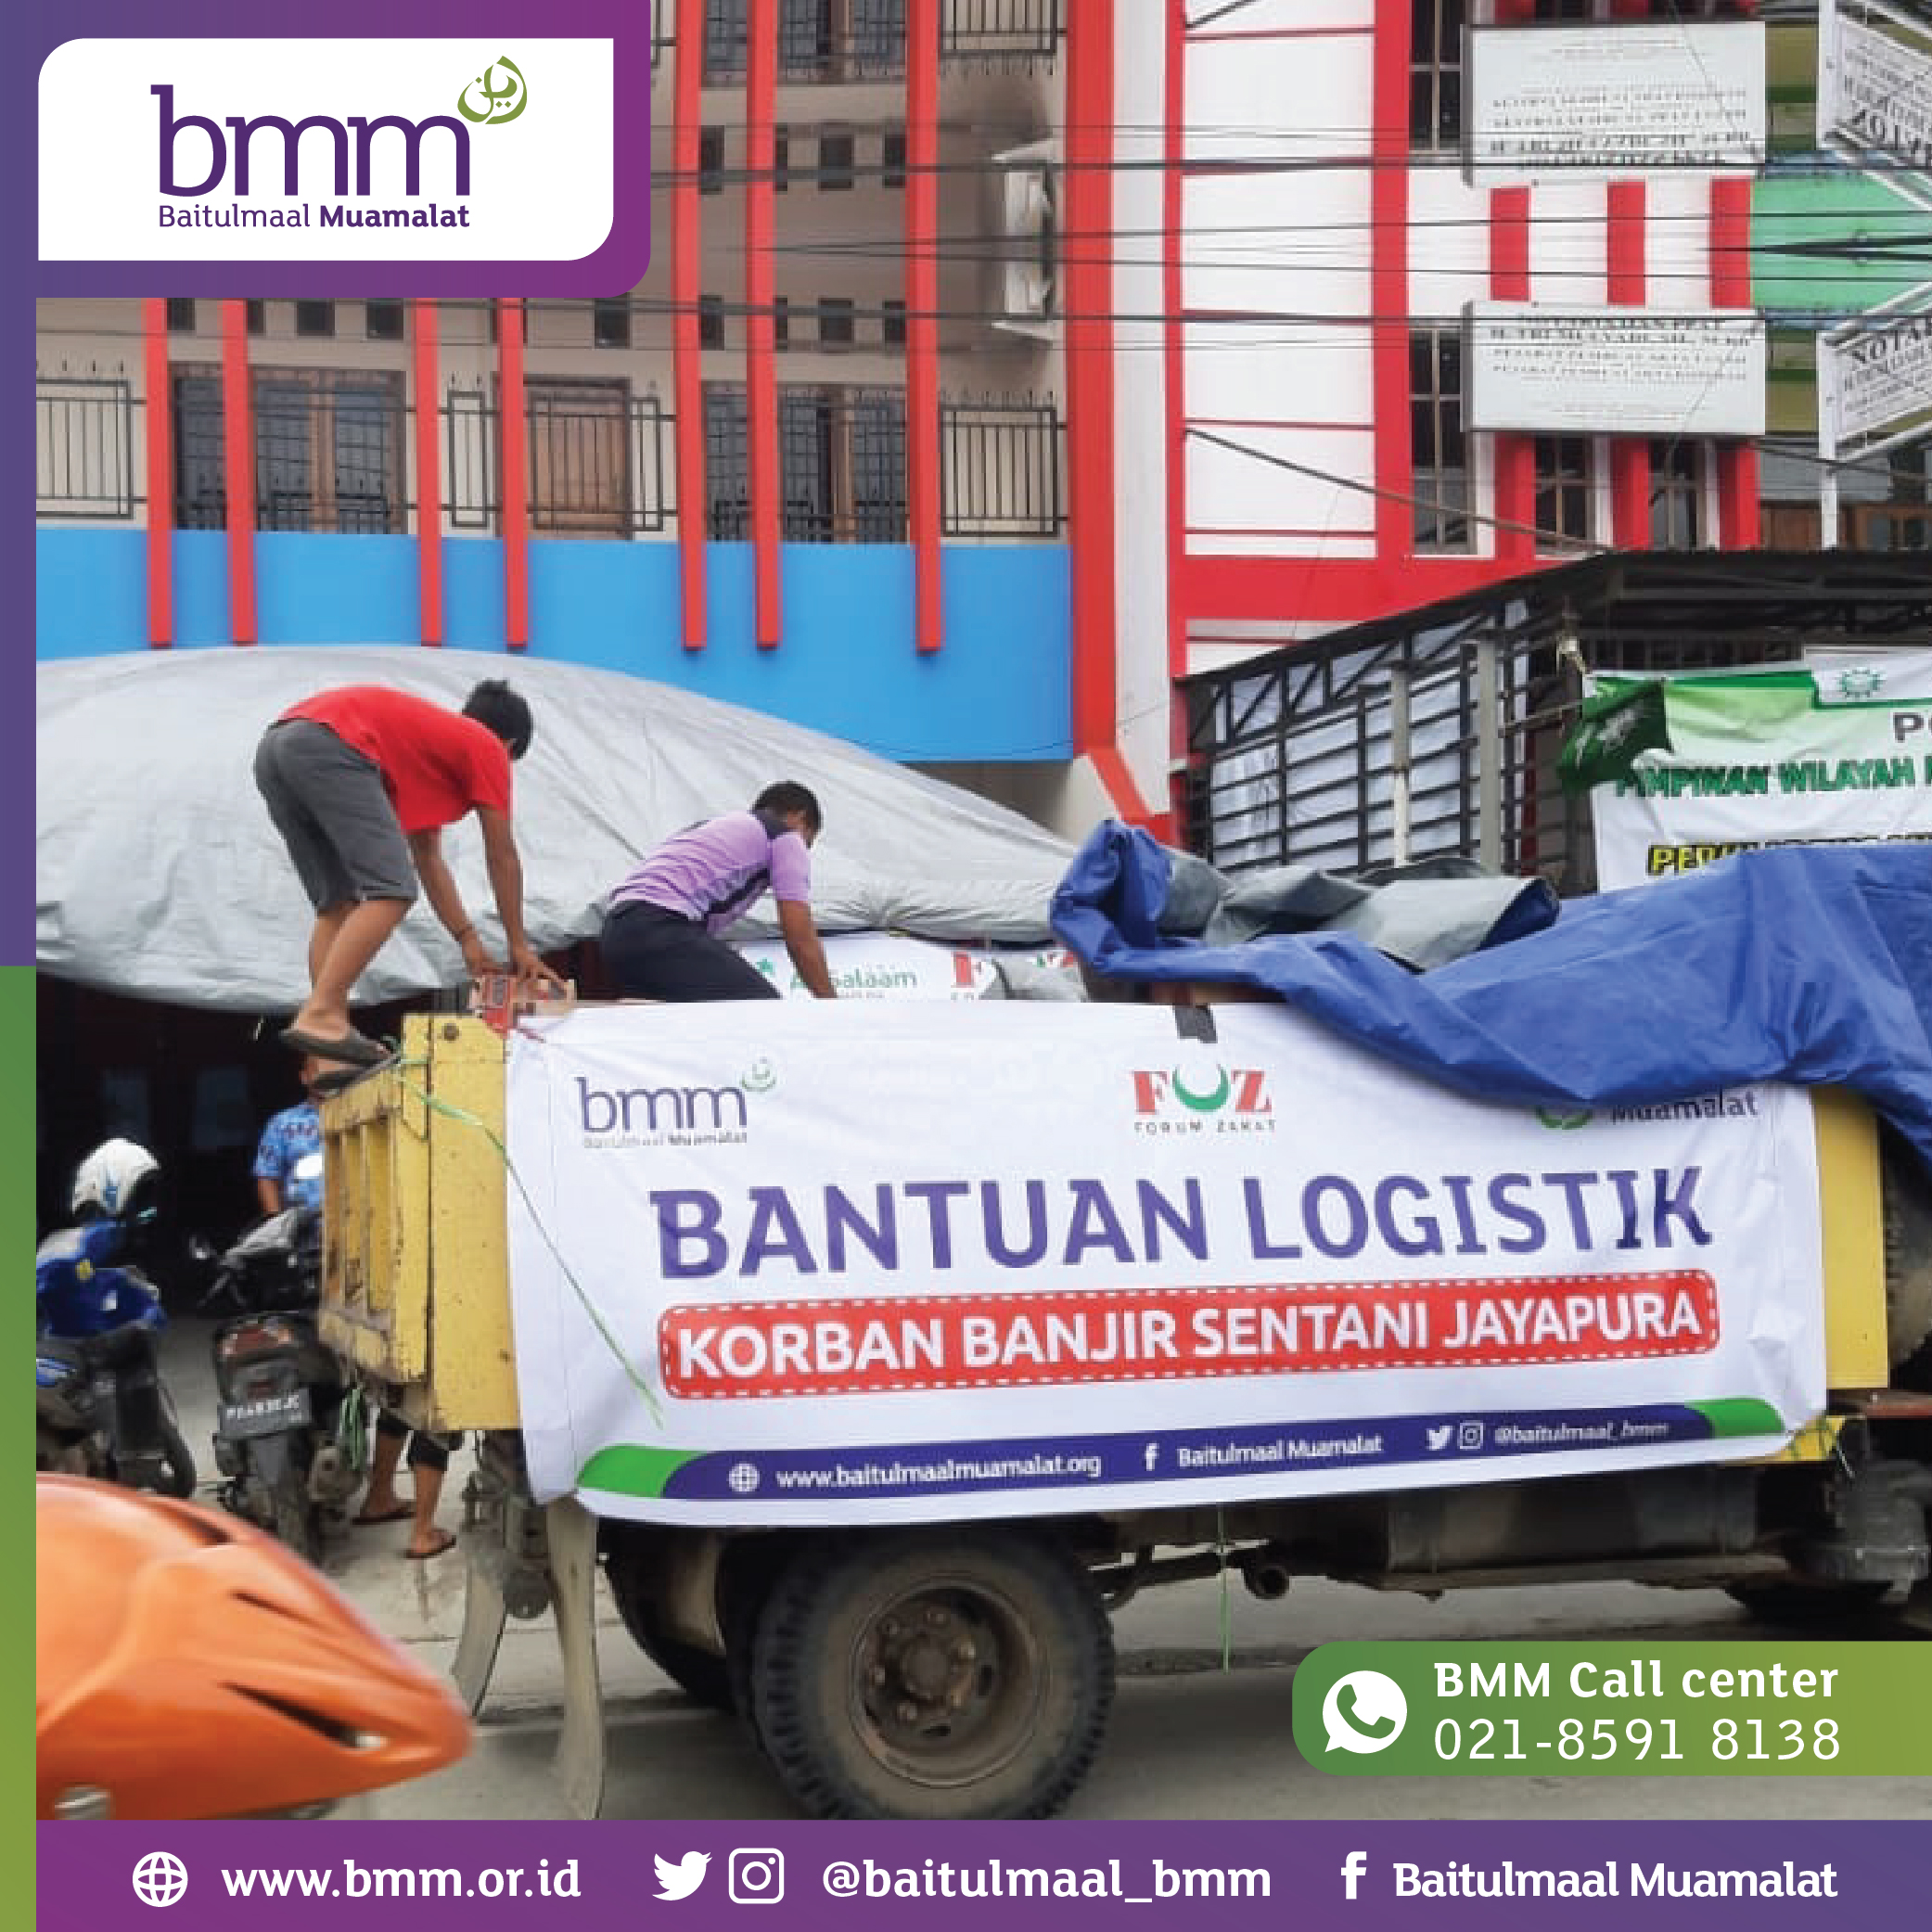 files/news/bantuan-logistik-sentani-papua-96066ed22669cc4.jpg